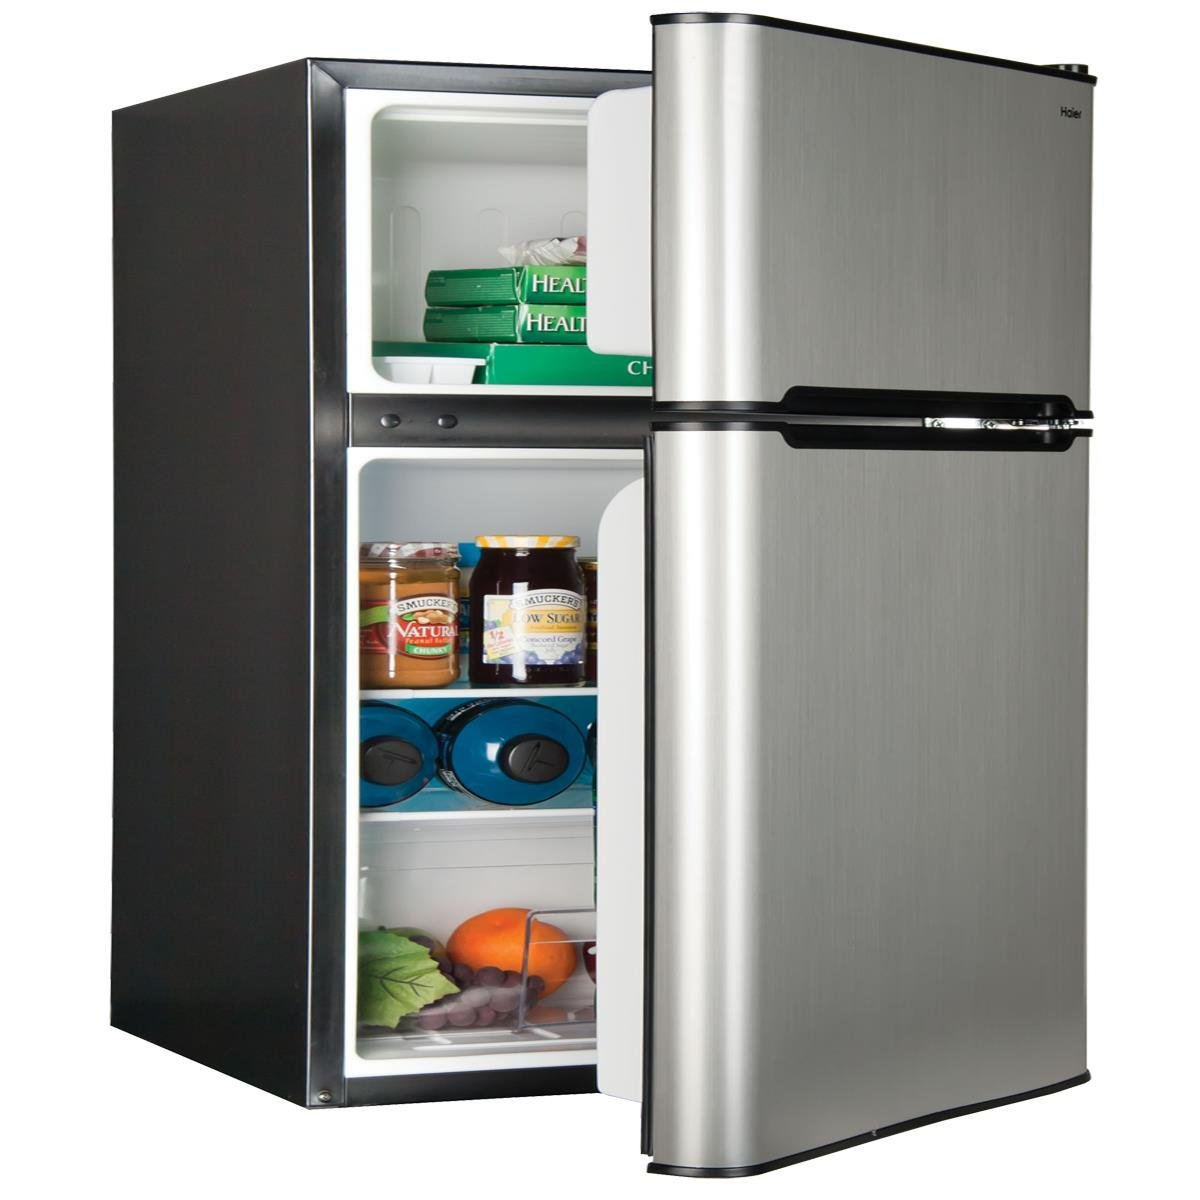 haier mini fridge parts. haier hc31tg42sv 3.2 cu. ft. top mount refrigerator/freezer, stainless steel: amazon.ca: electronics mini fridge parts t